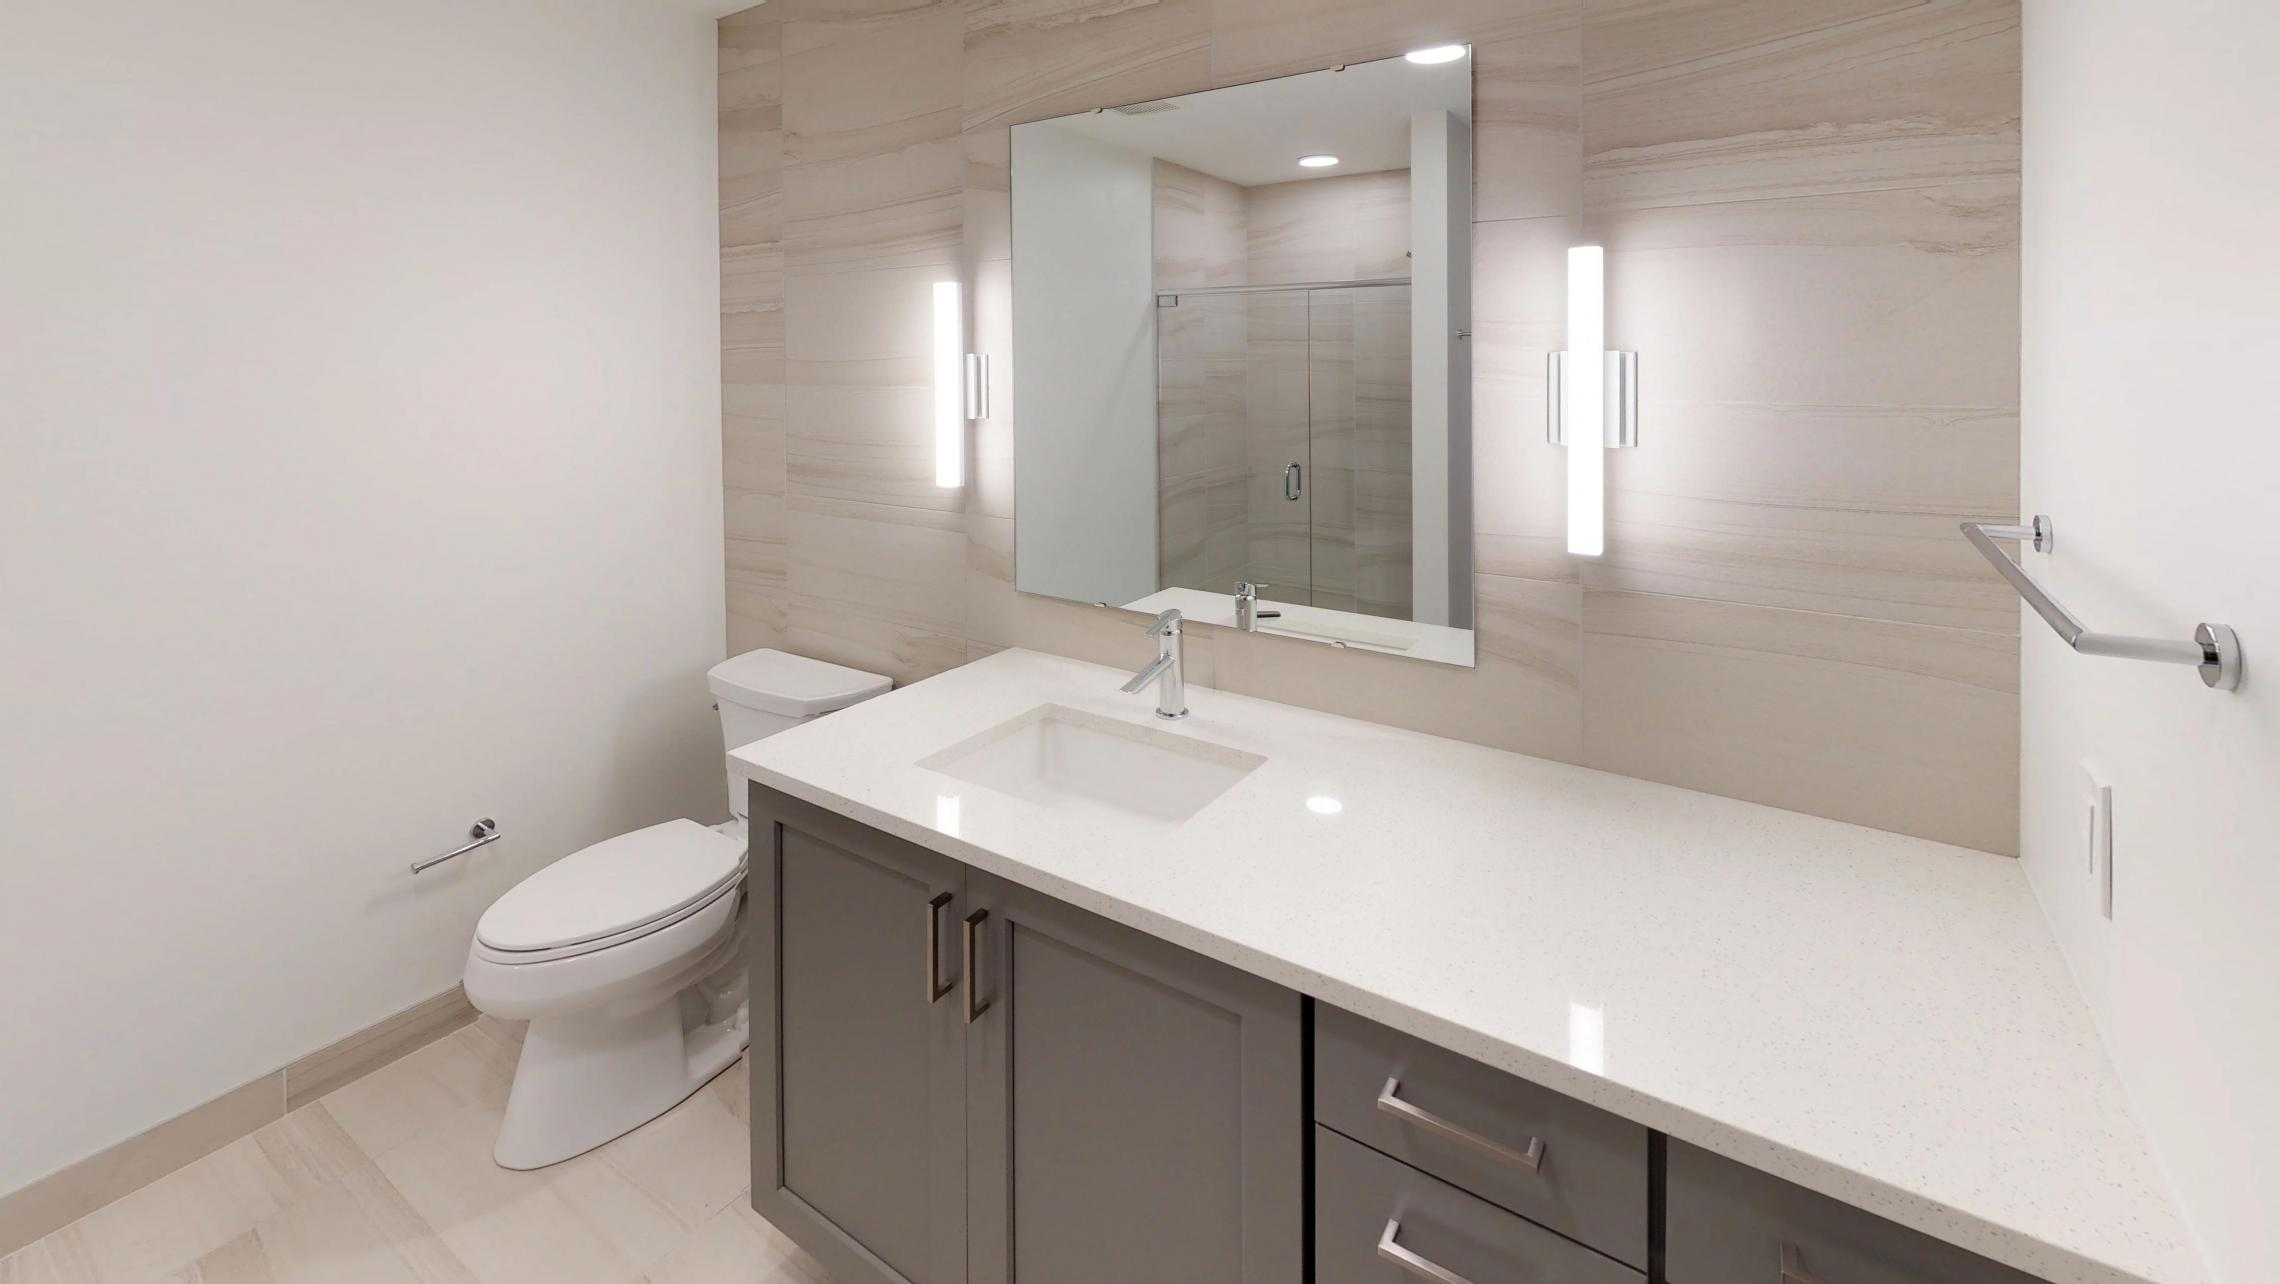 Pressman-601-Apartment-Two-Bedroom-Downtown-Madison-Upscale-Modern-Luxury-Bathroom-Views-Capitol